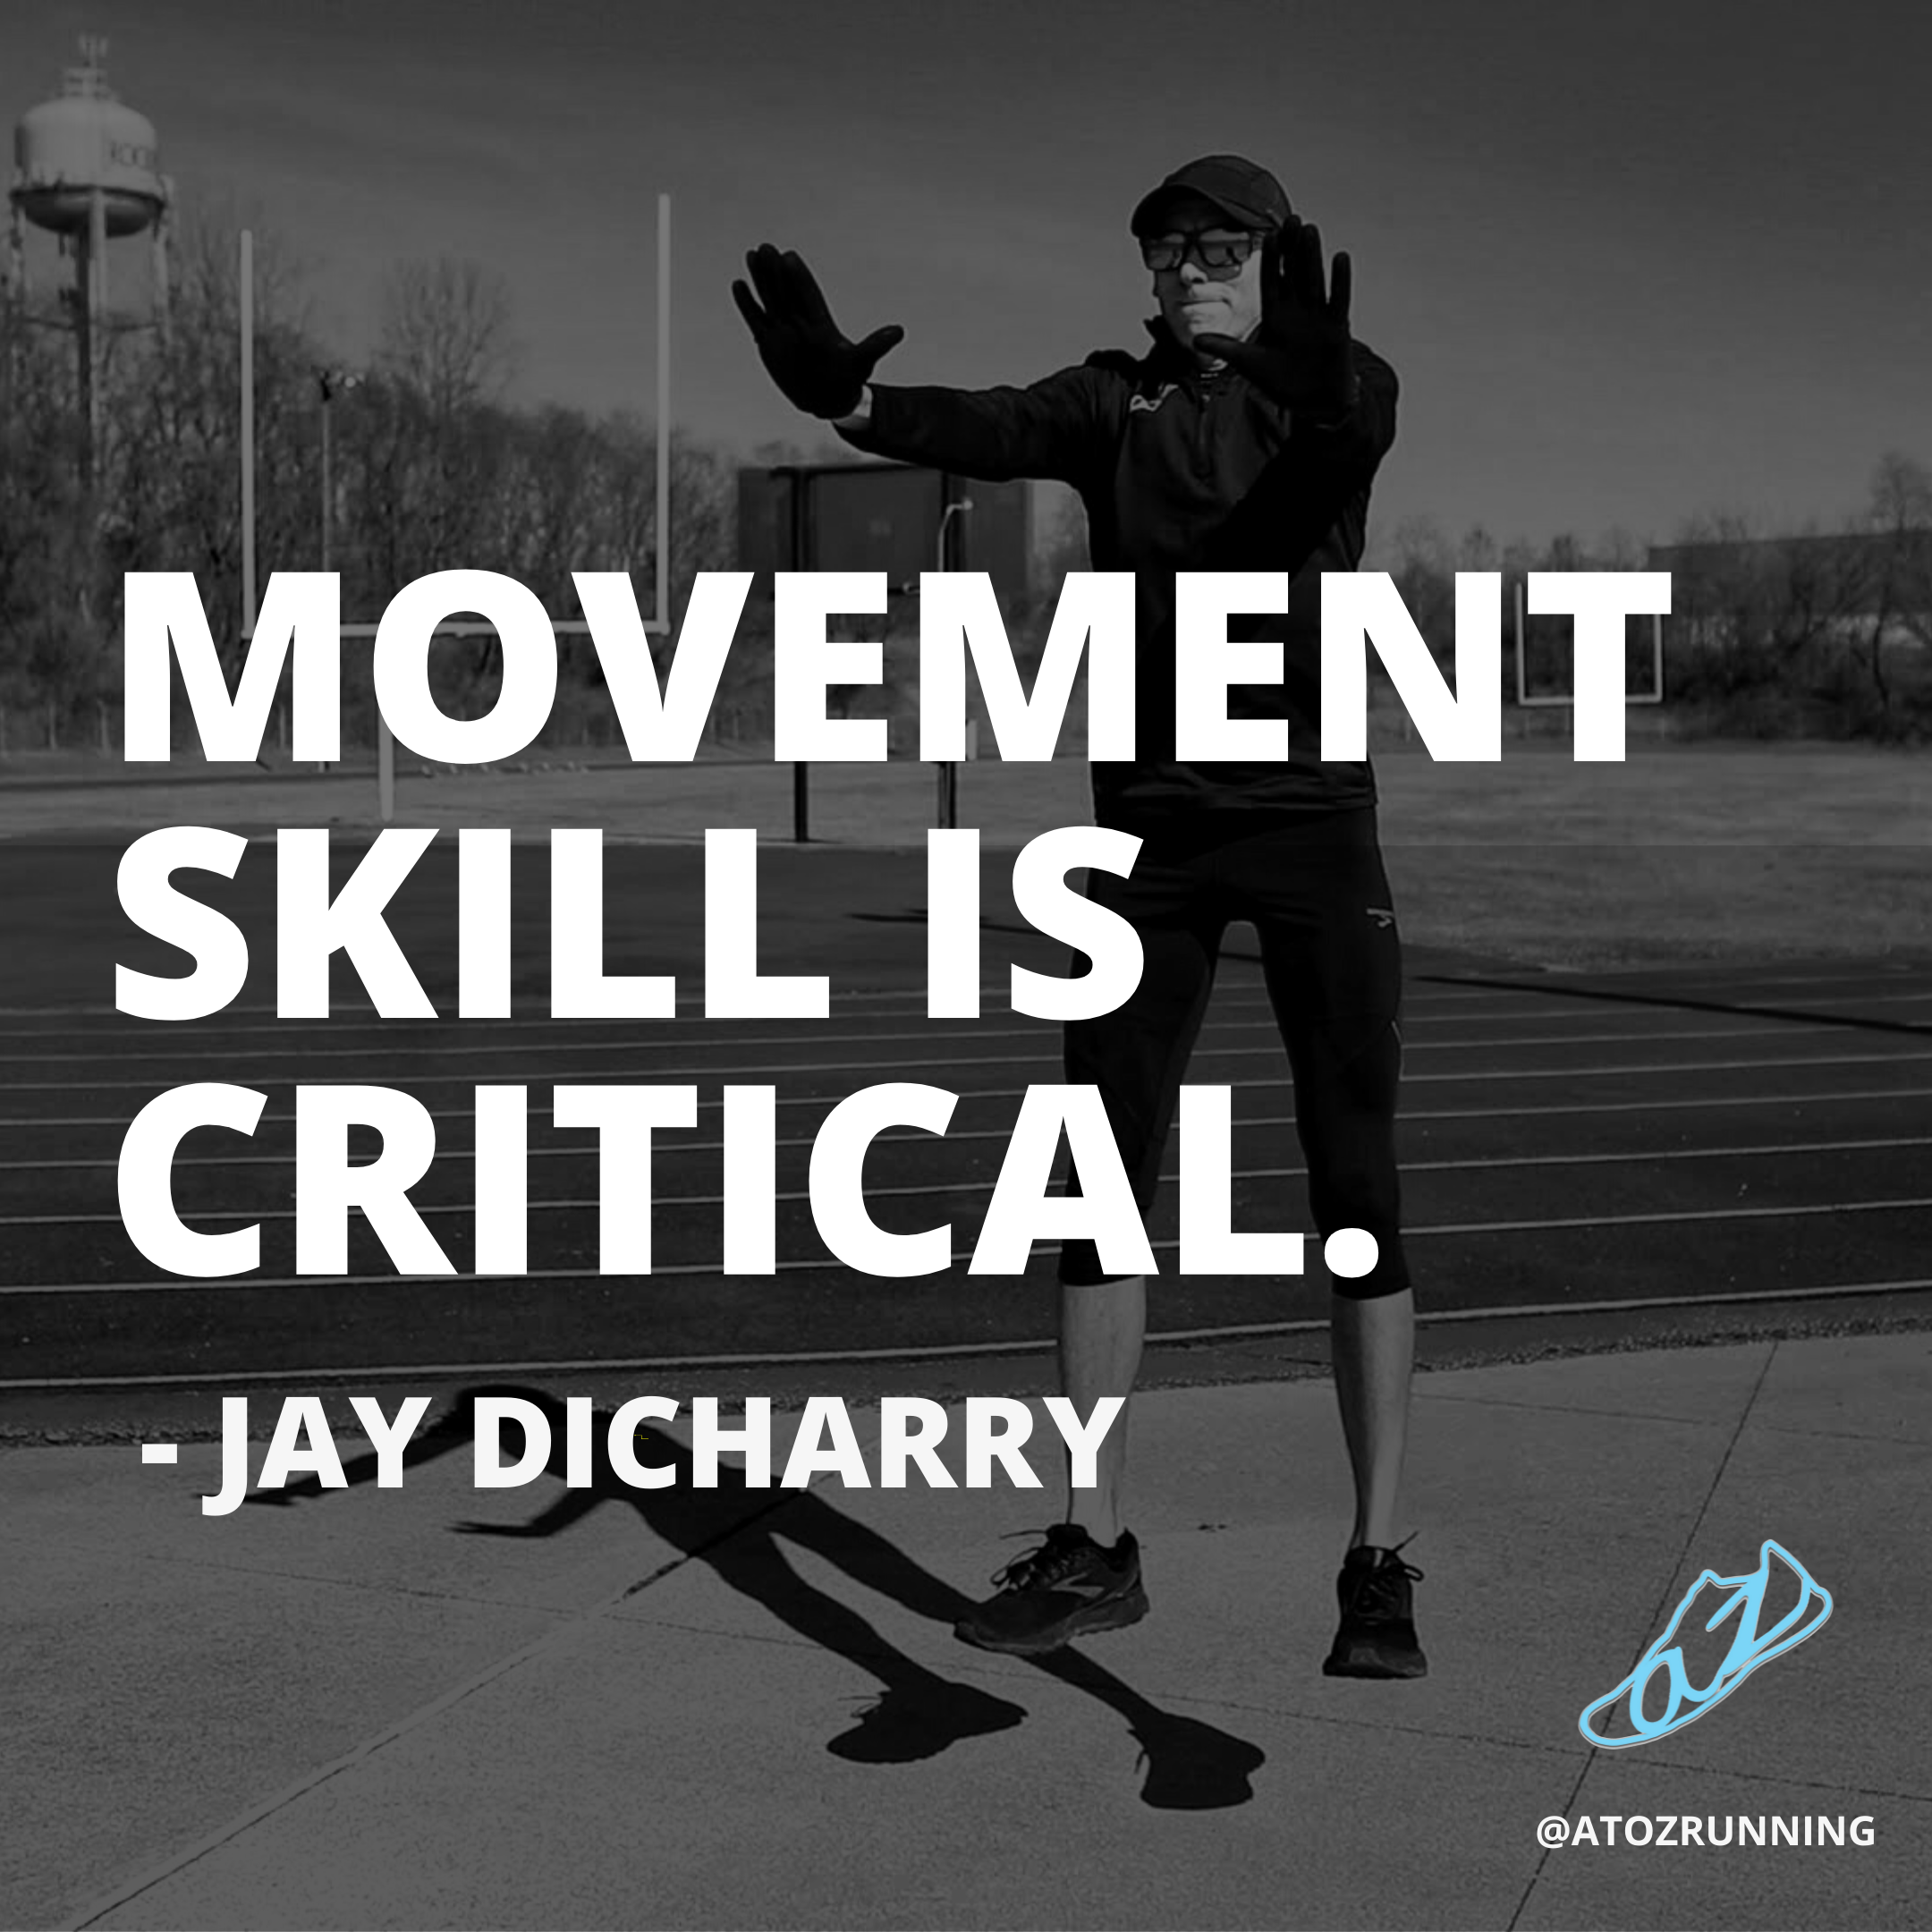 Movement skill is critical. - Jay Dicharry quote